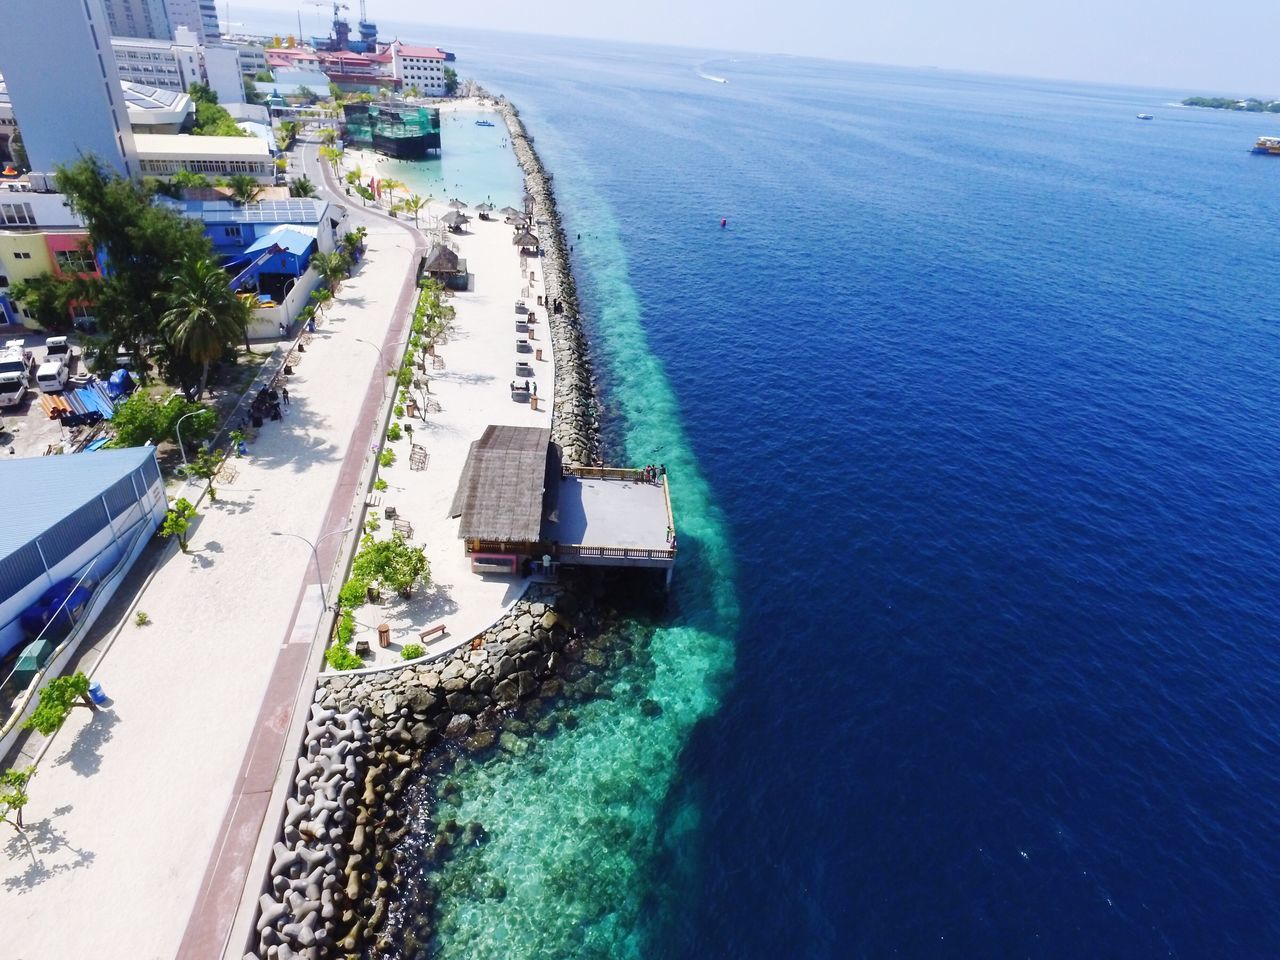 water, sea, high angle view, architecture, built structure, day, transportation, road, outdoors, building exterior, nature, no people, horizon over water, blue, scenics, nautical vessel, beauty in nature, sky, city